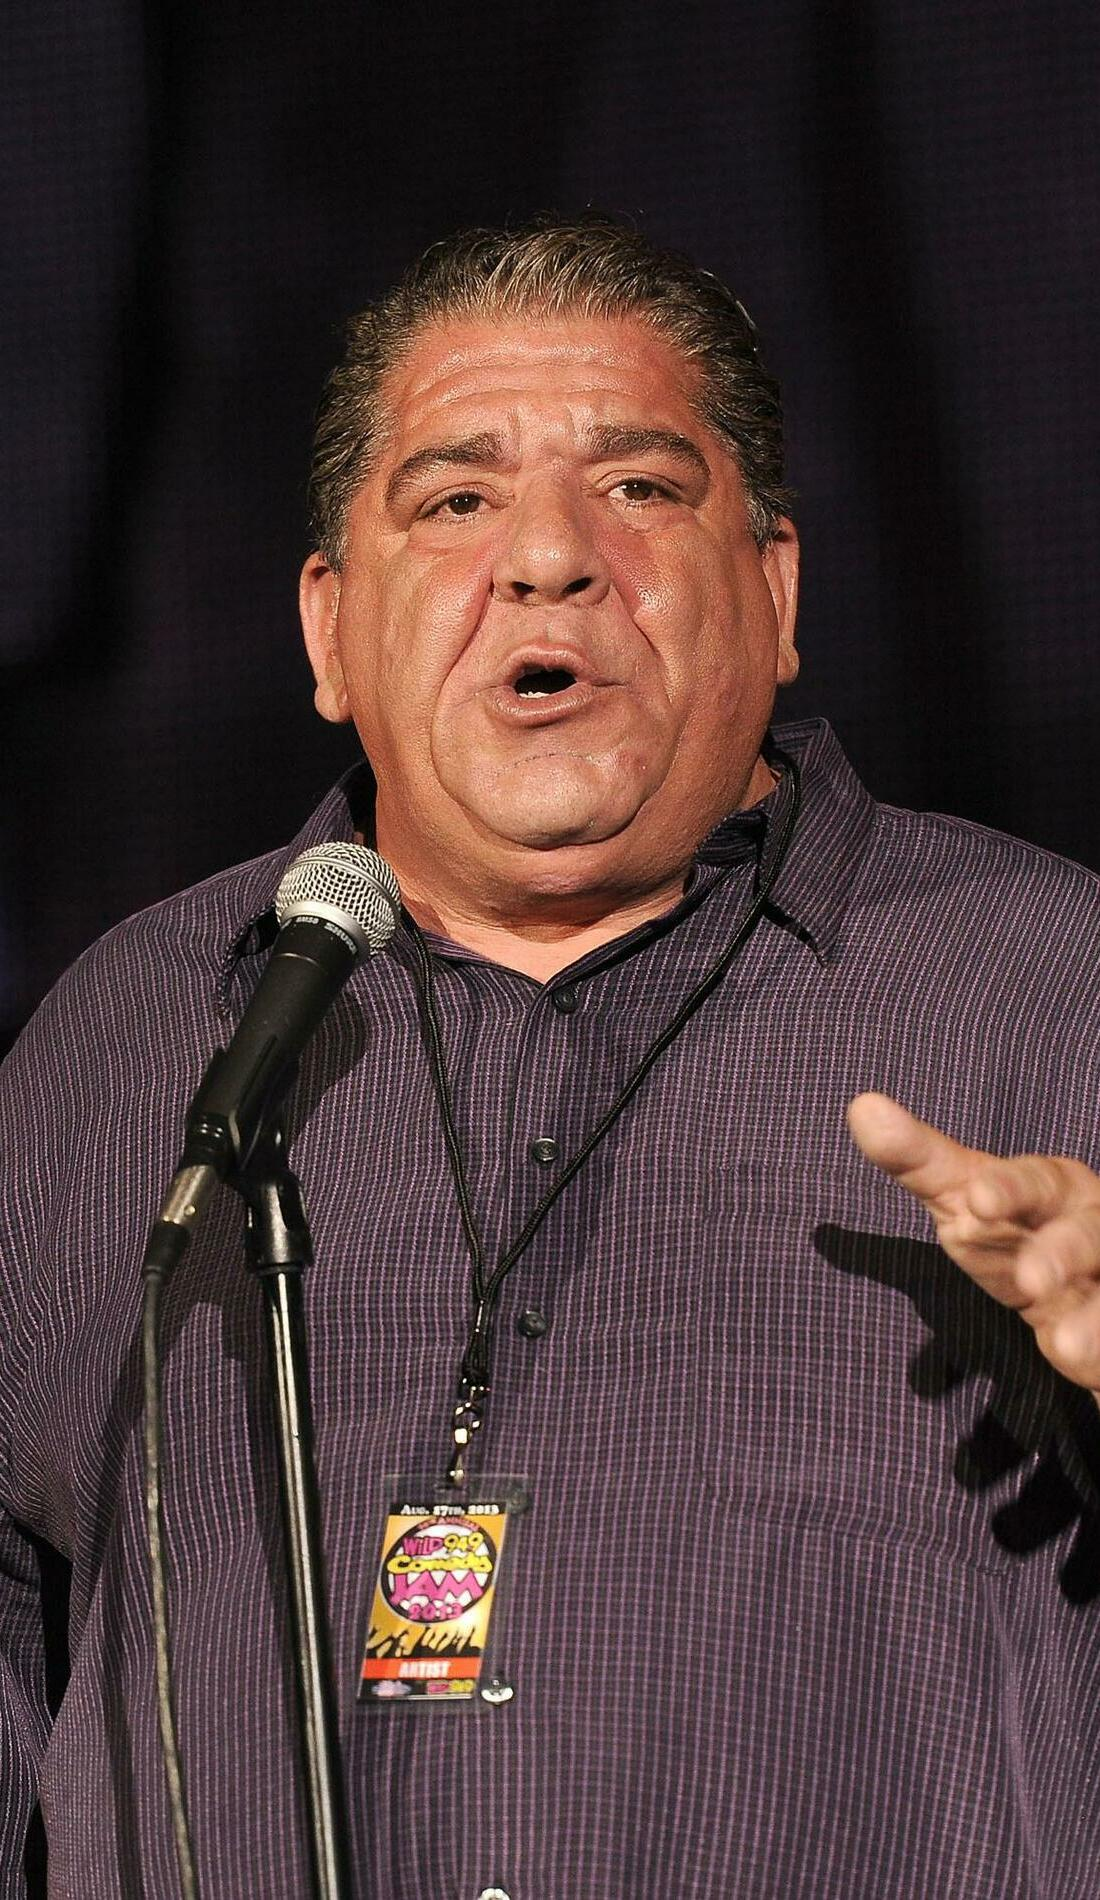 A Joey Diaz live event